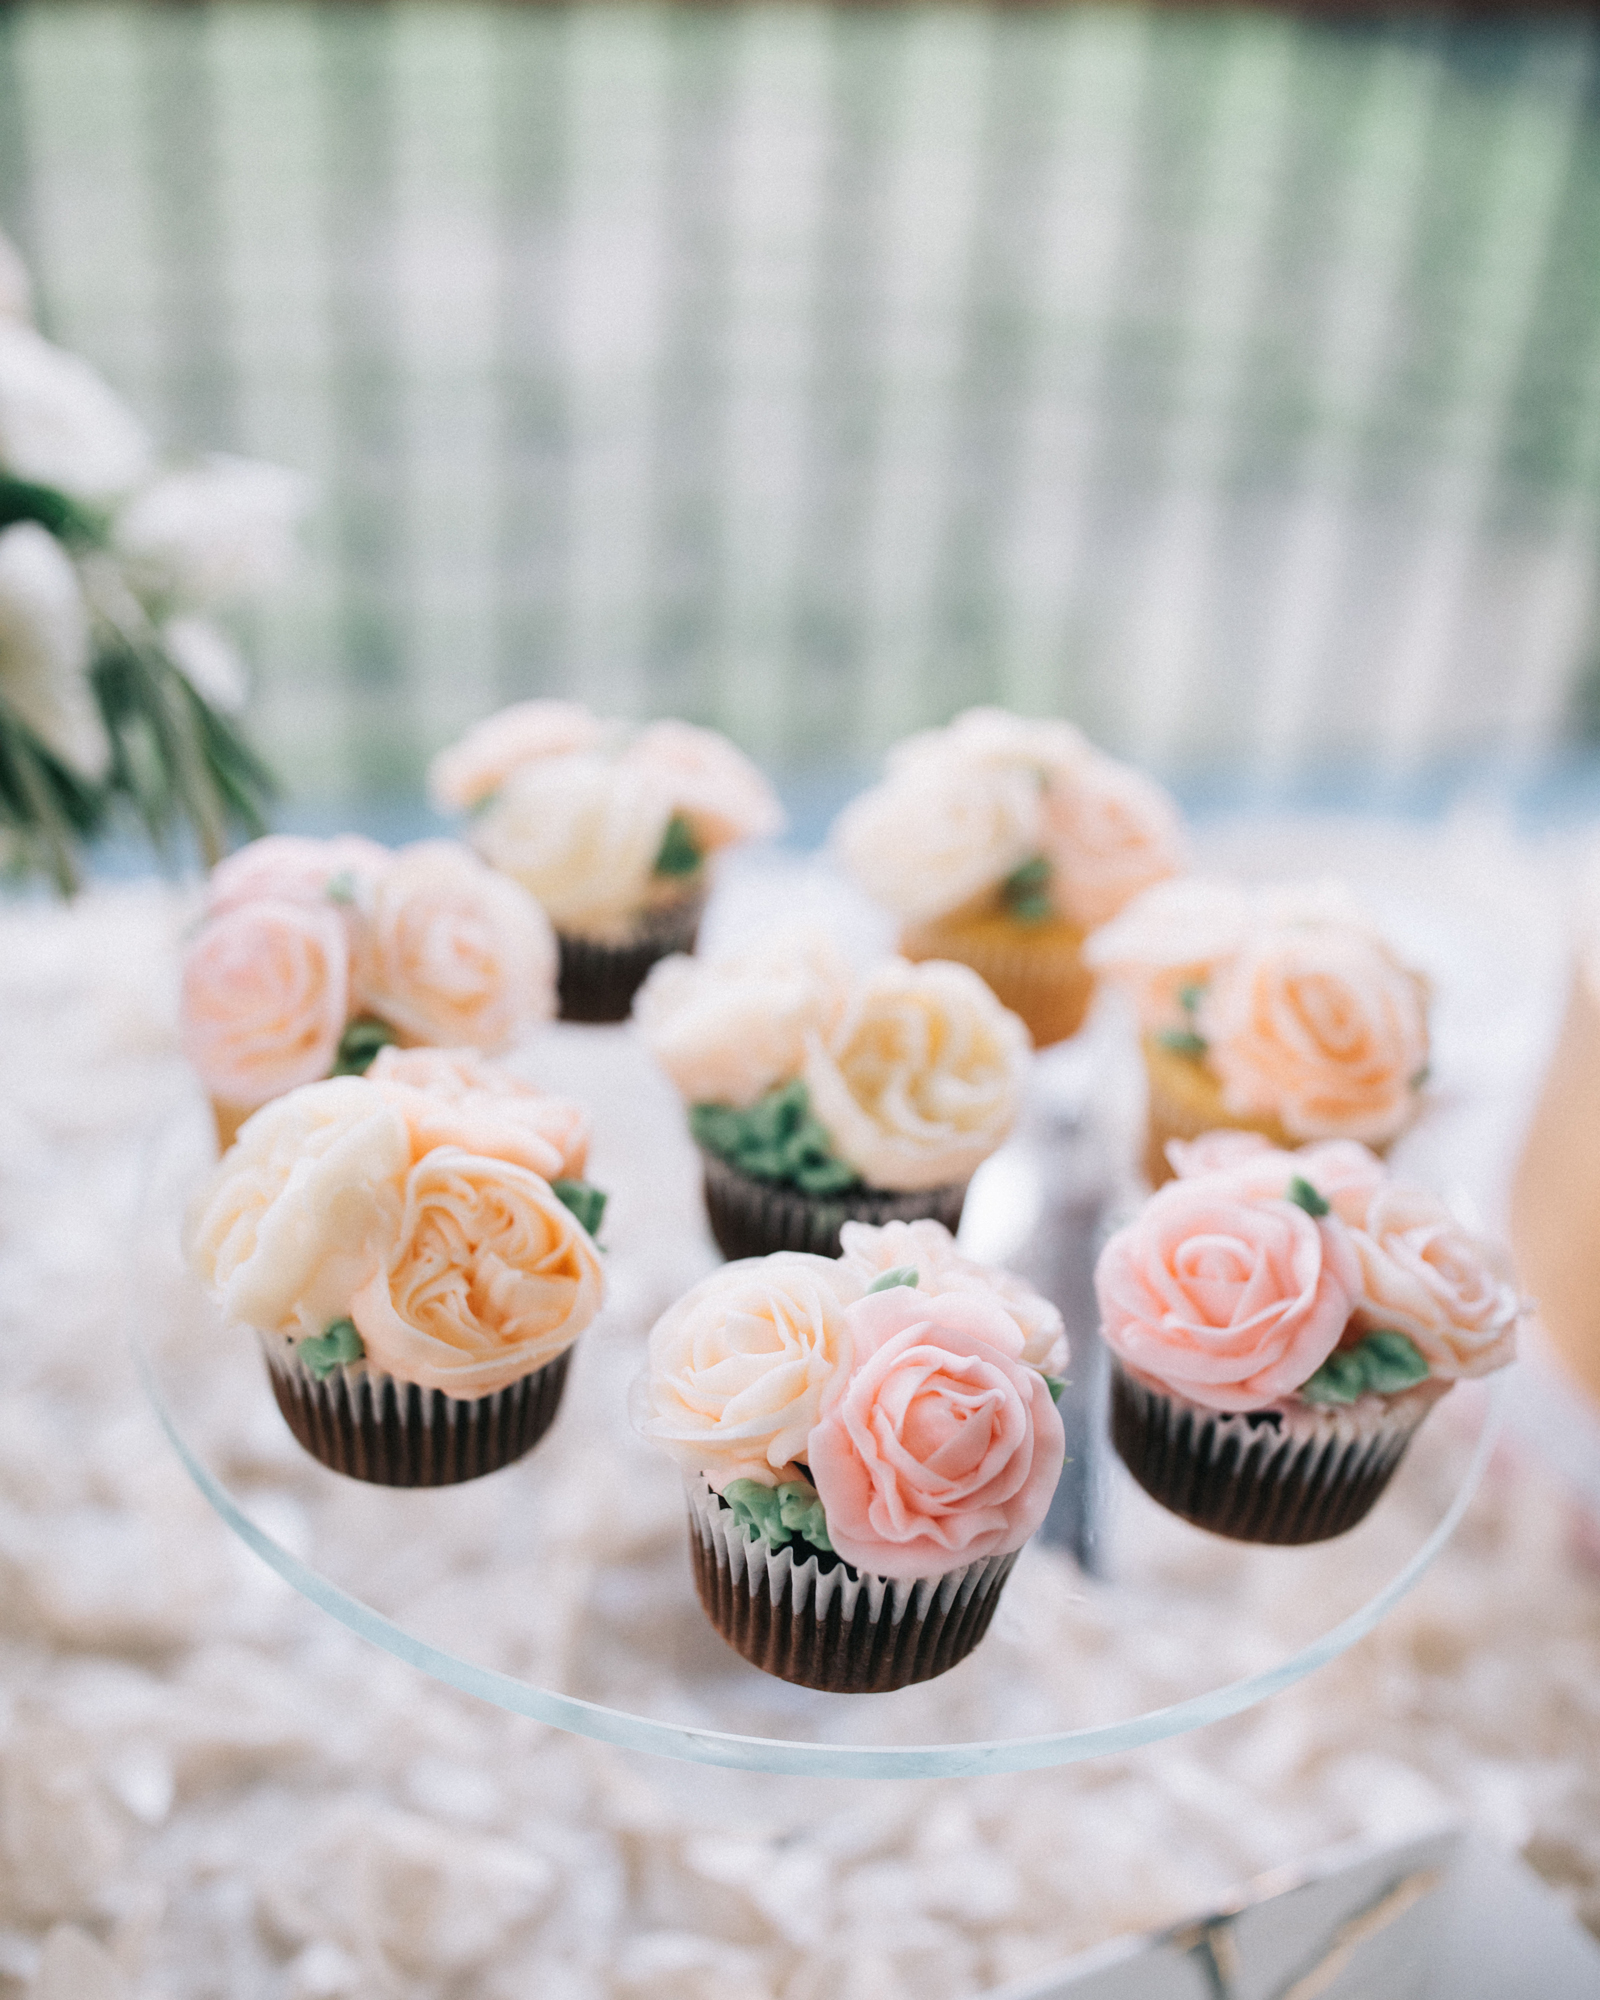 mini chocolate cupcakes with peach and pink frosted flowers